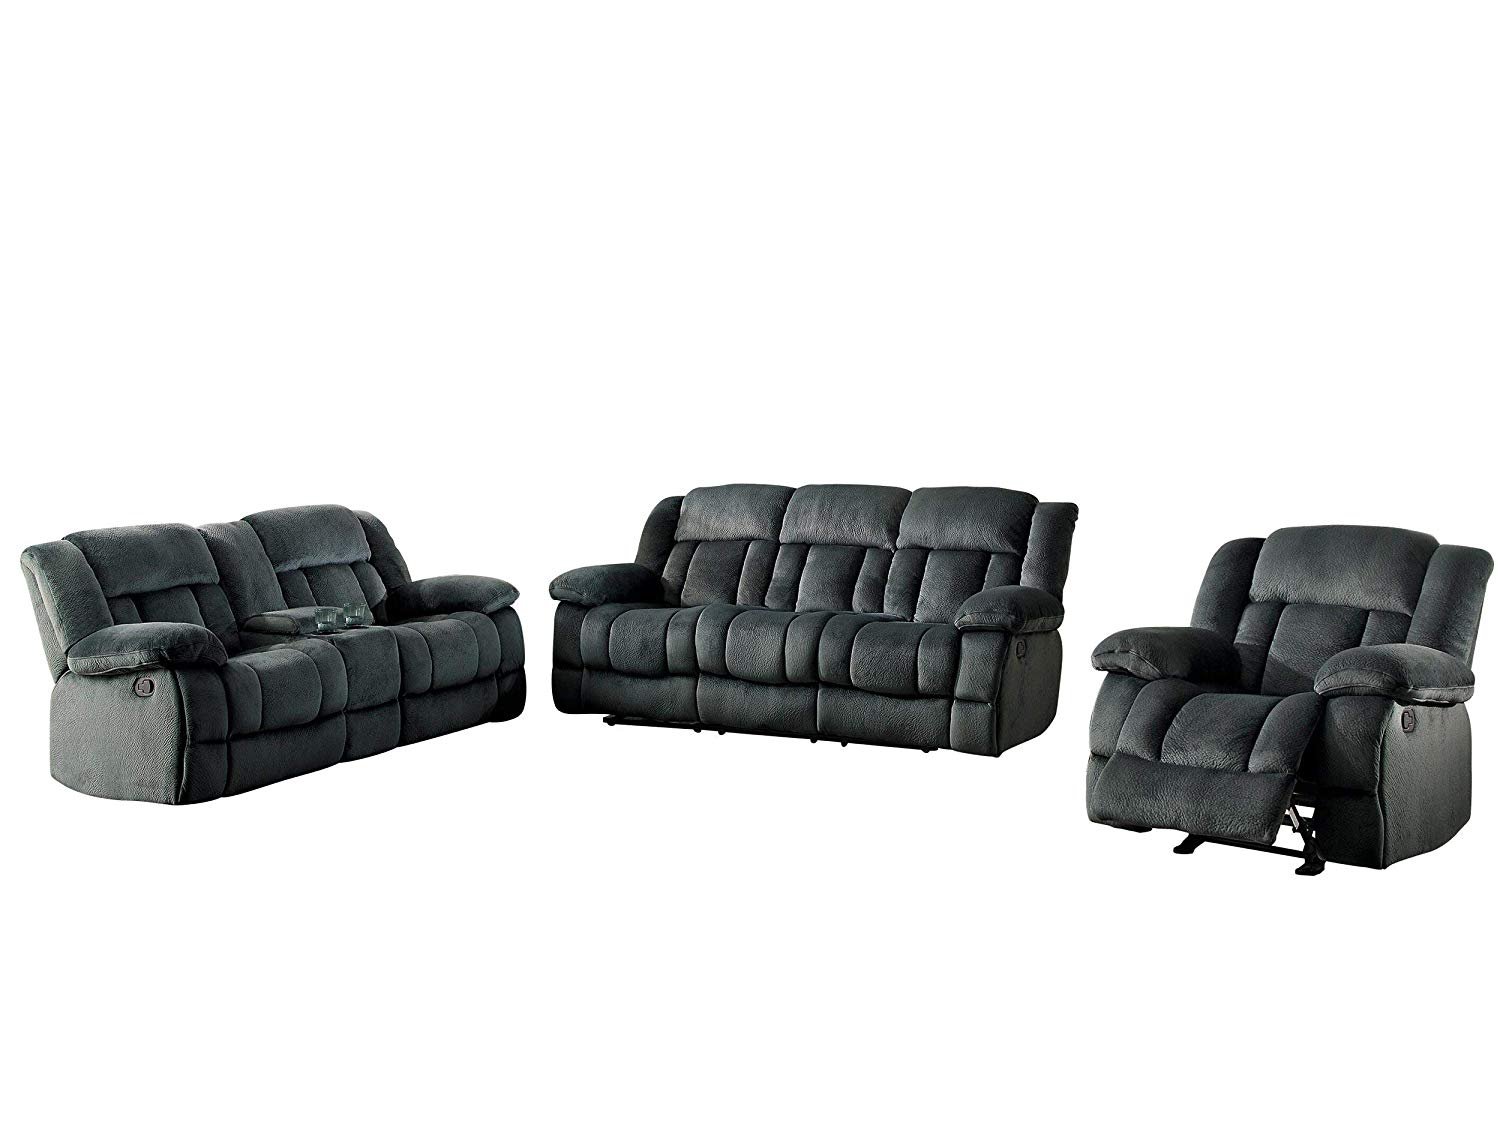 Get Quotations Latona 3pc Double Reclining Sofa Center Console Love Seat Glider Chair In Charcoal Microfiber